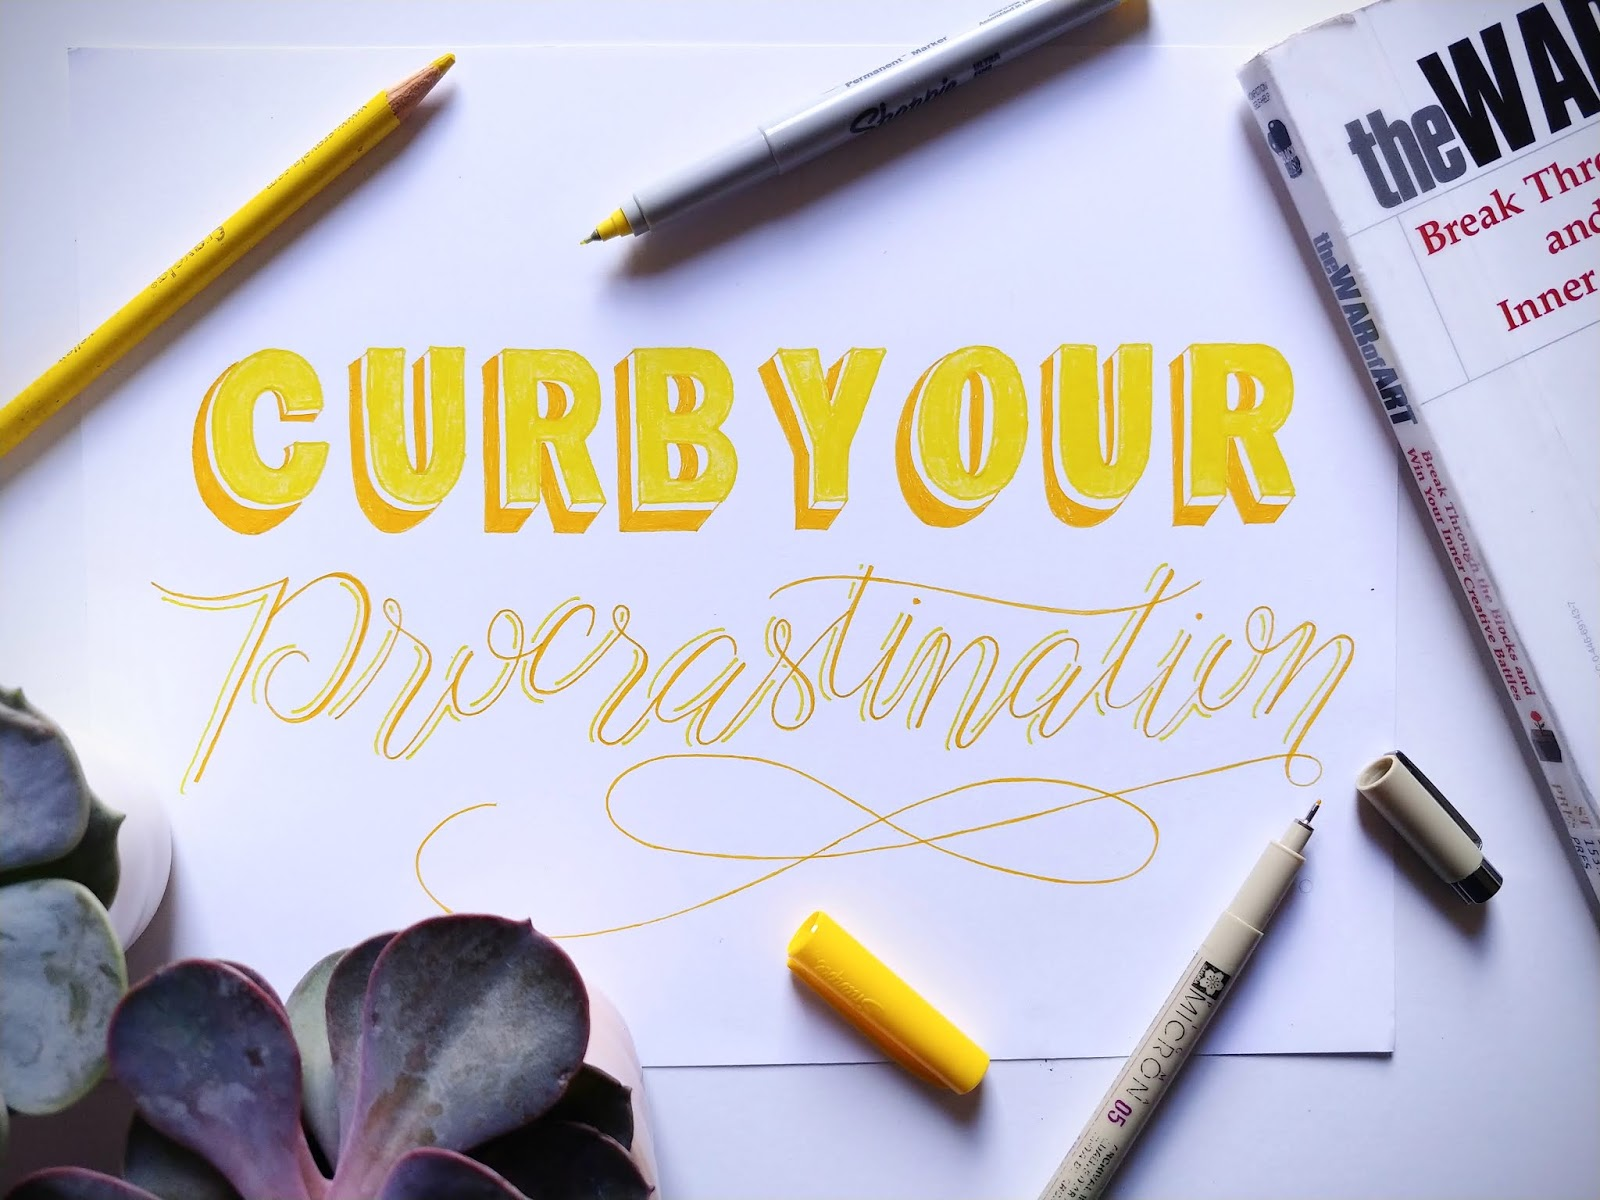 For those of us who have a harder time curbing our procrastination, change is not easy and recognizing the effects of our poor time management skills isn't always vividly clear.